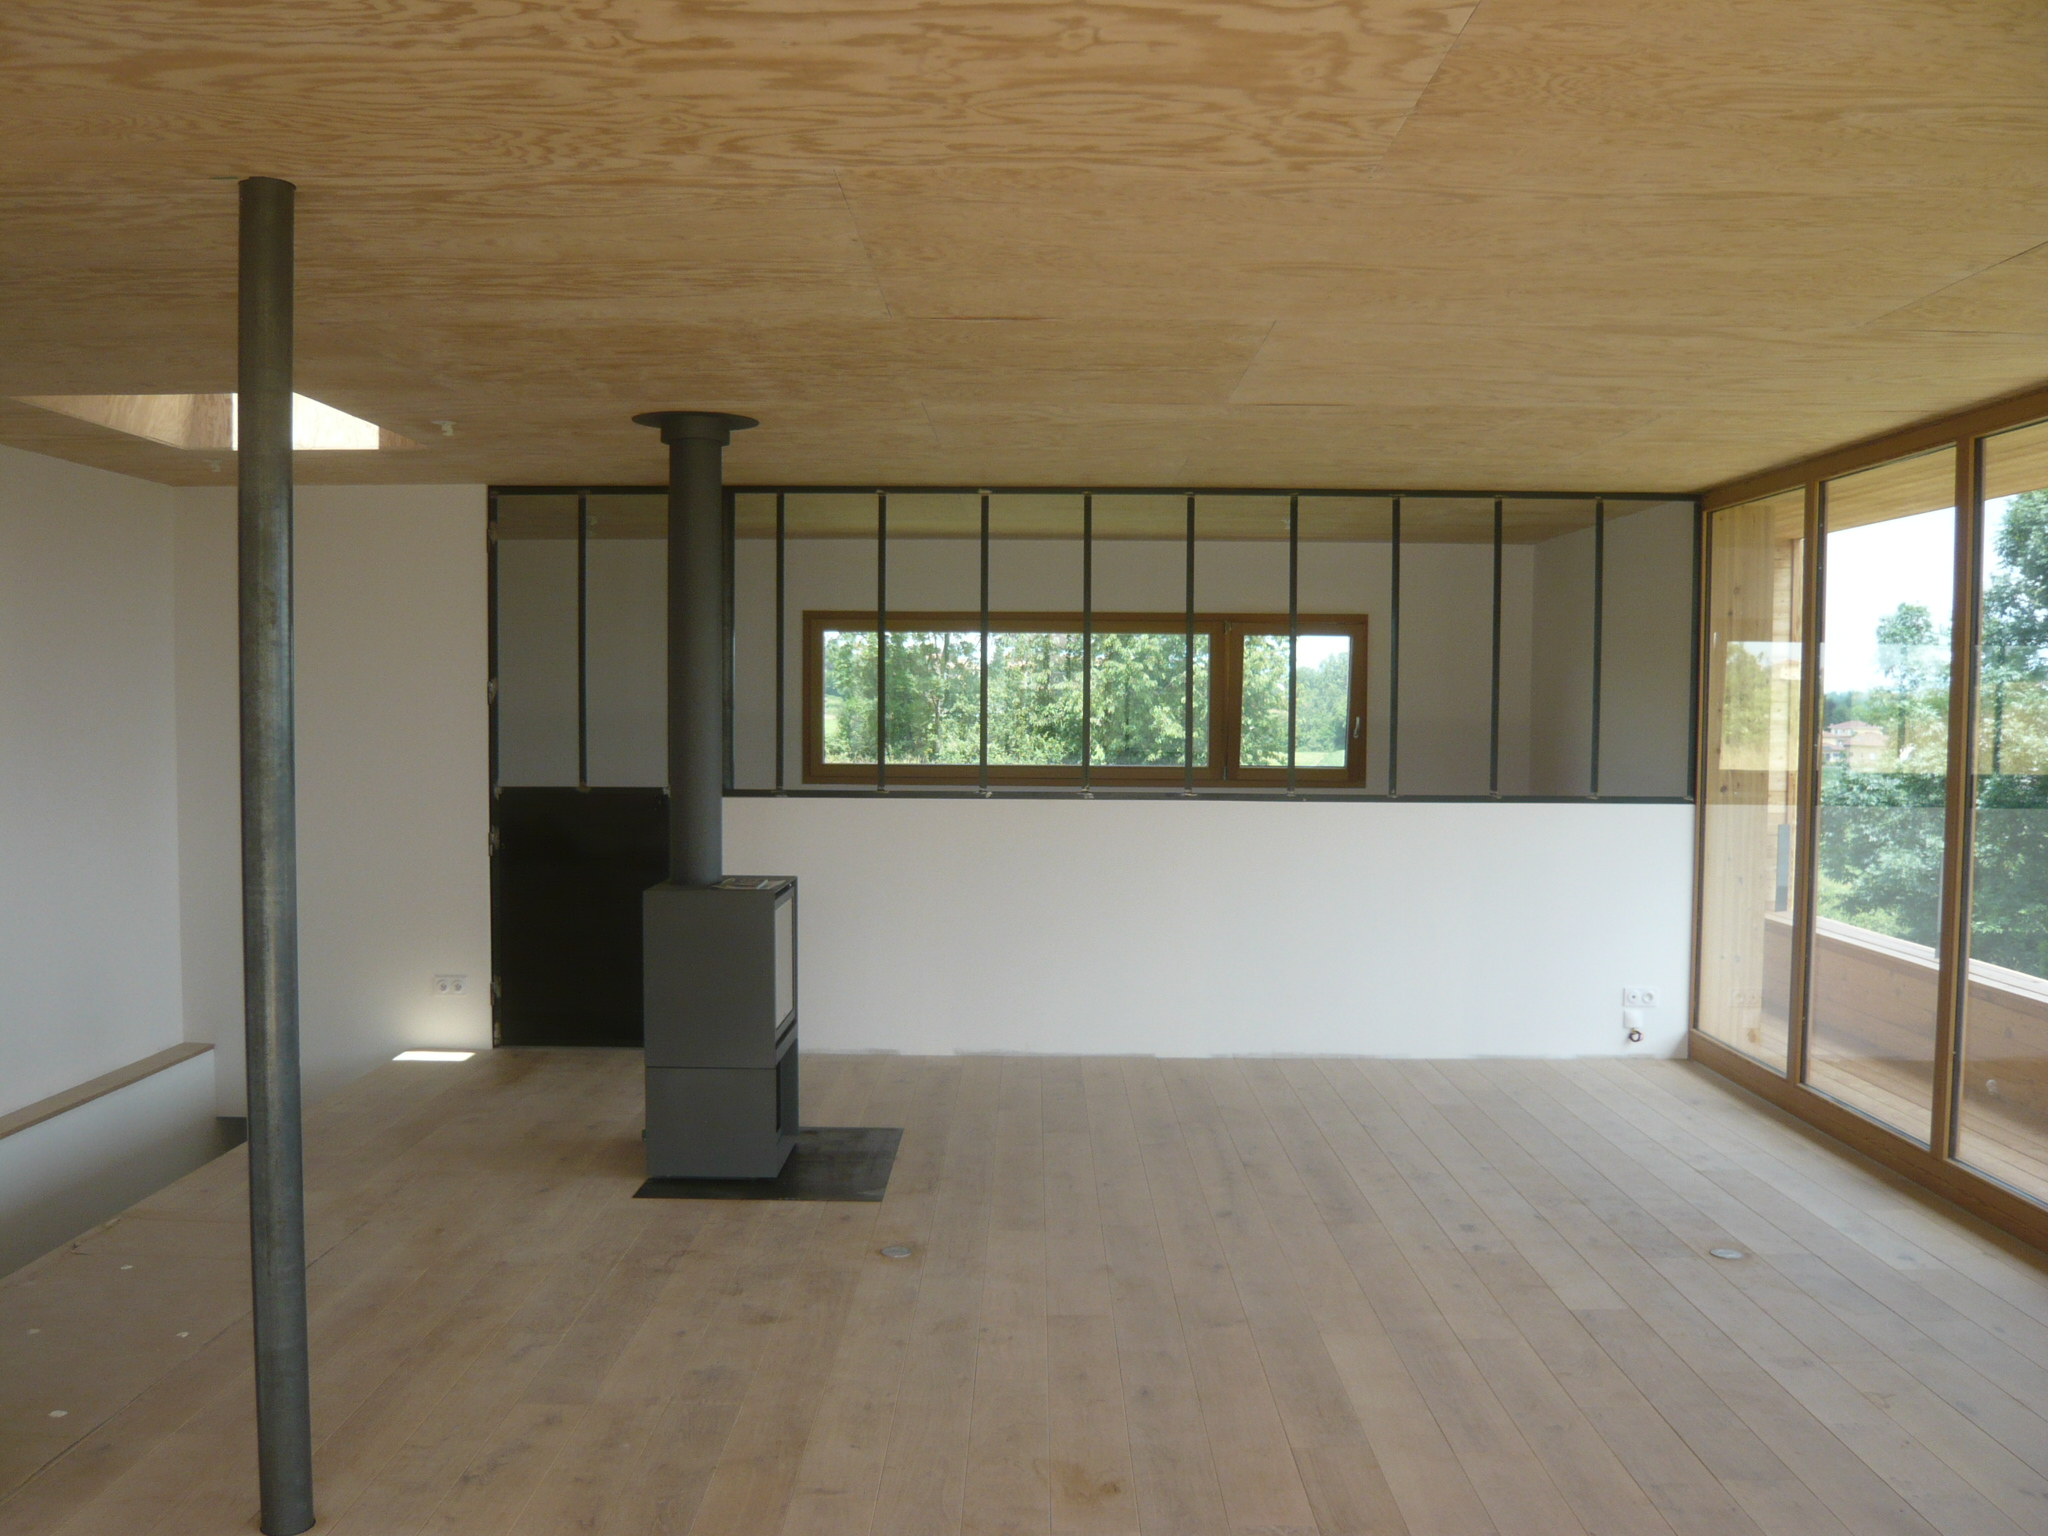 Interieur maison bois contemporaine maison eko for Constructeur maison bois contemporaine